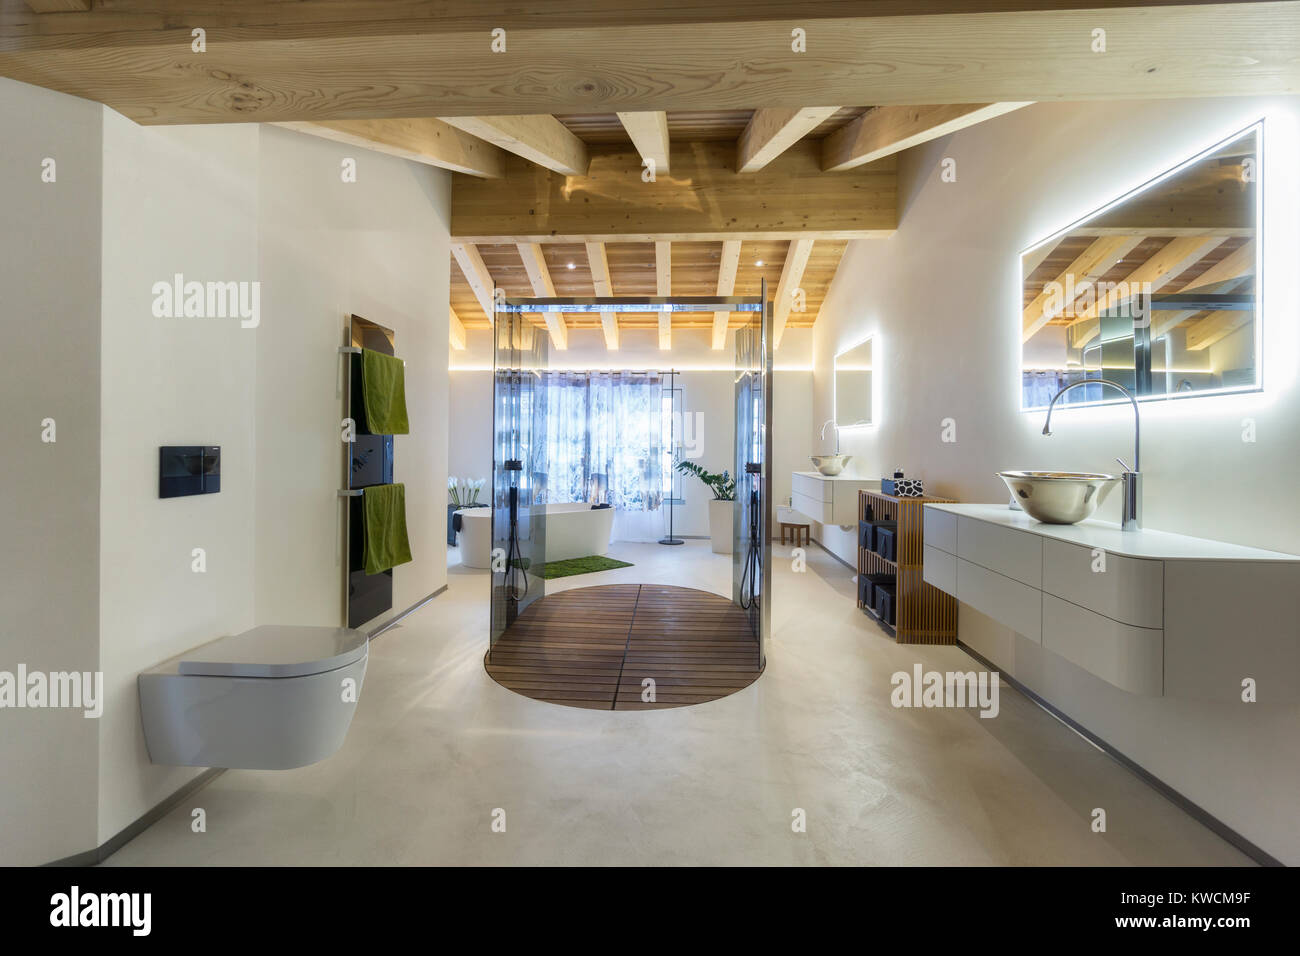 luxury bathroom with shower and wood ceiling - Stock Image